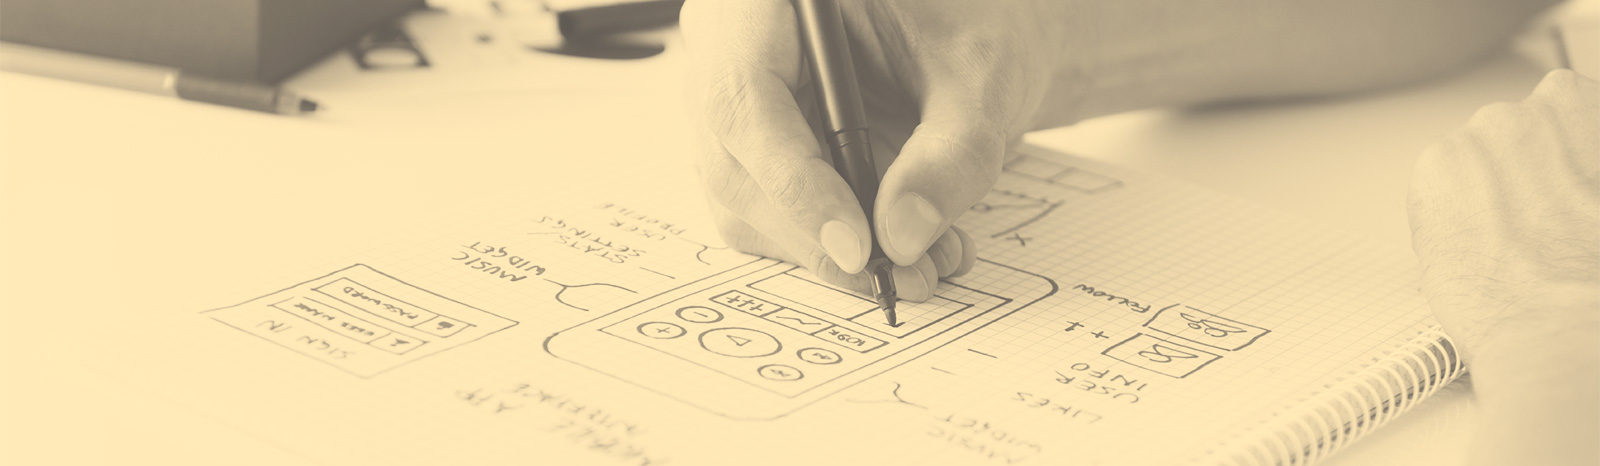 To Attract Funding, Develop a Prototype